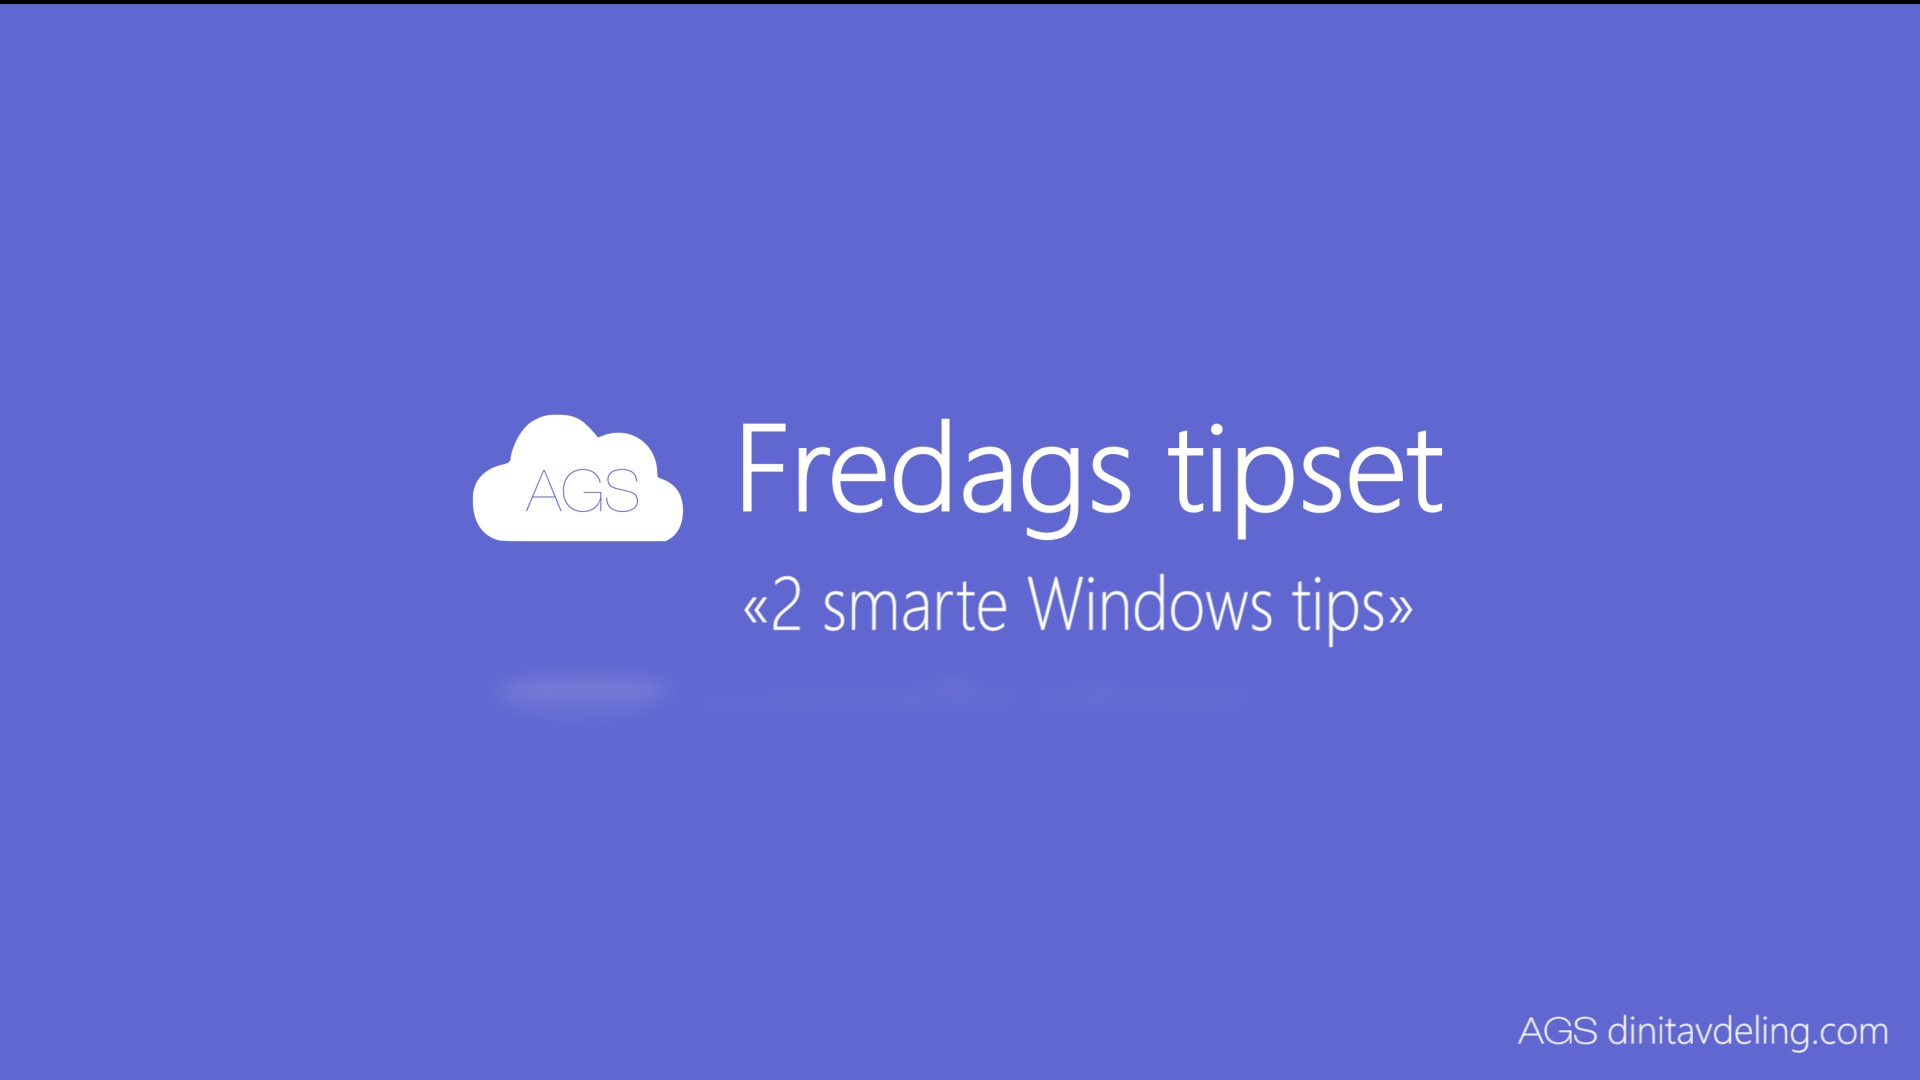 AGS Fredags tipset: 2 smarte Windows tips